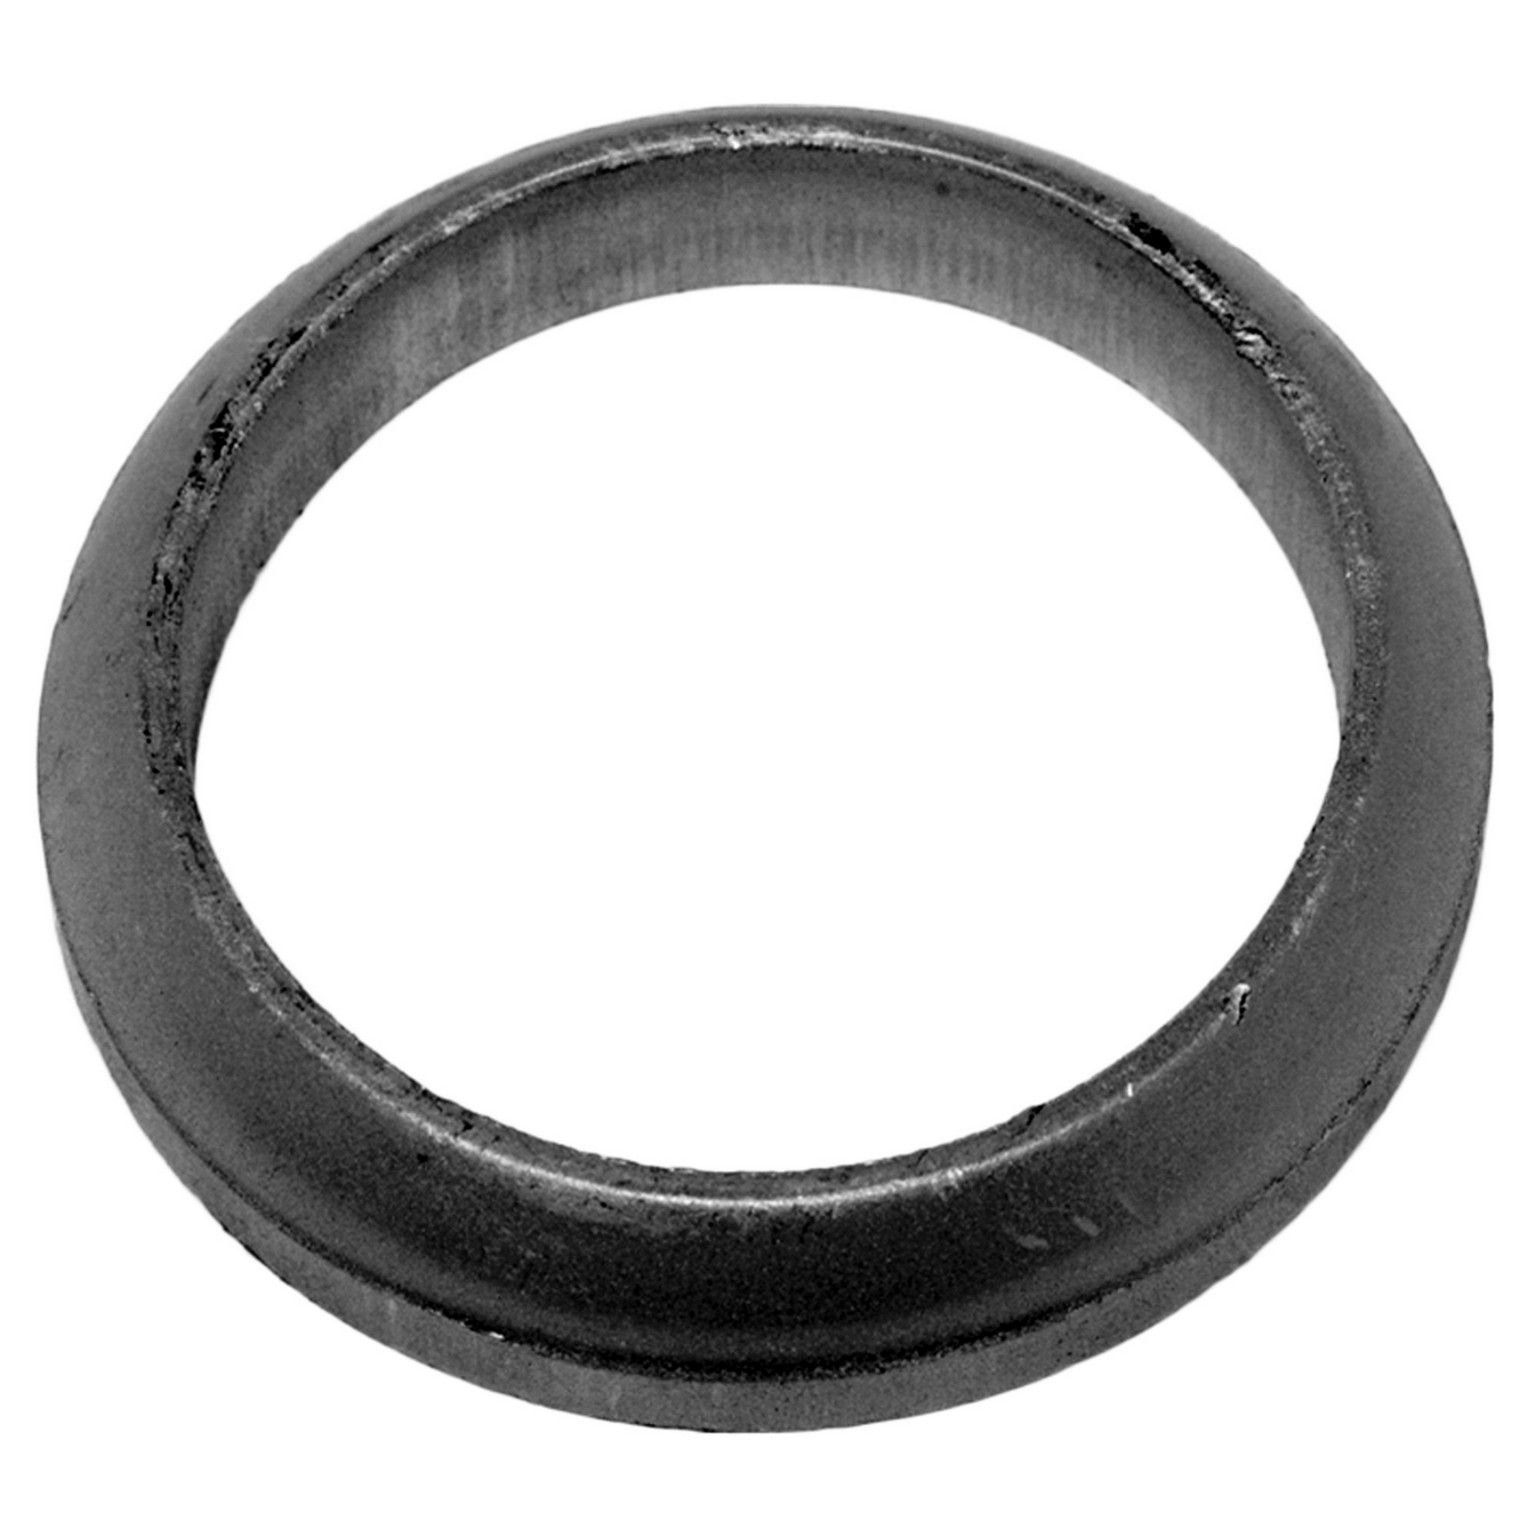 Ford Escape Exhaust Pipe Flange Gasket Replacement (Bosal